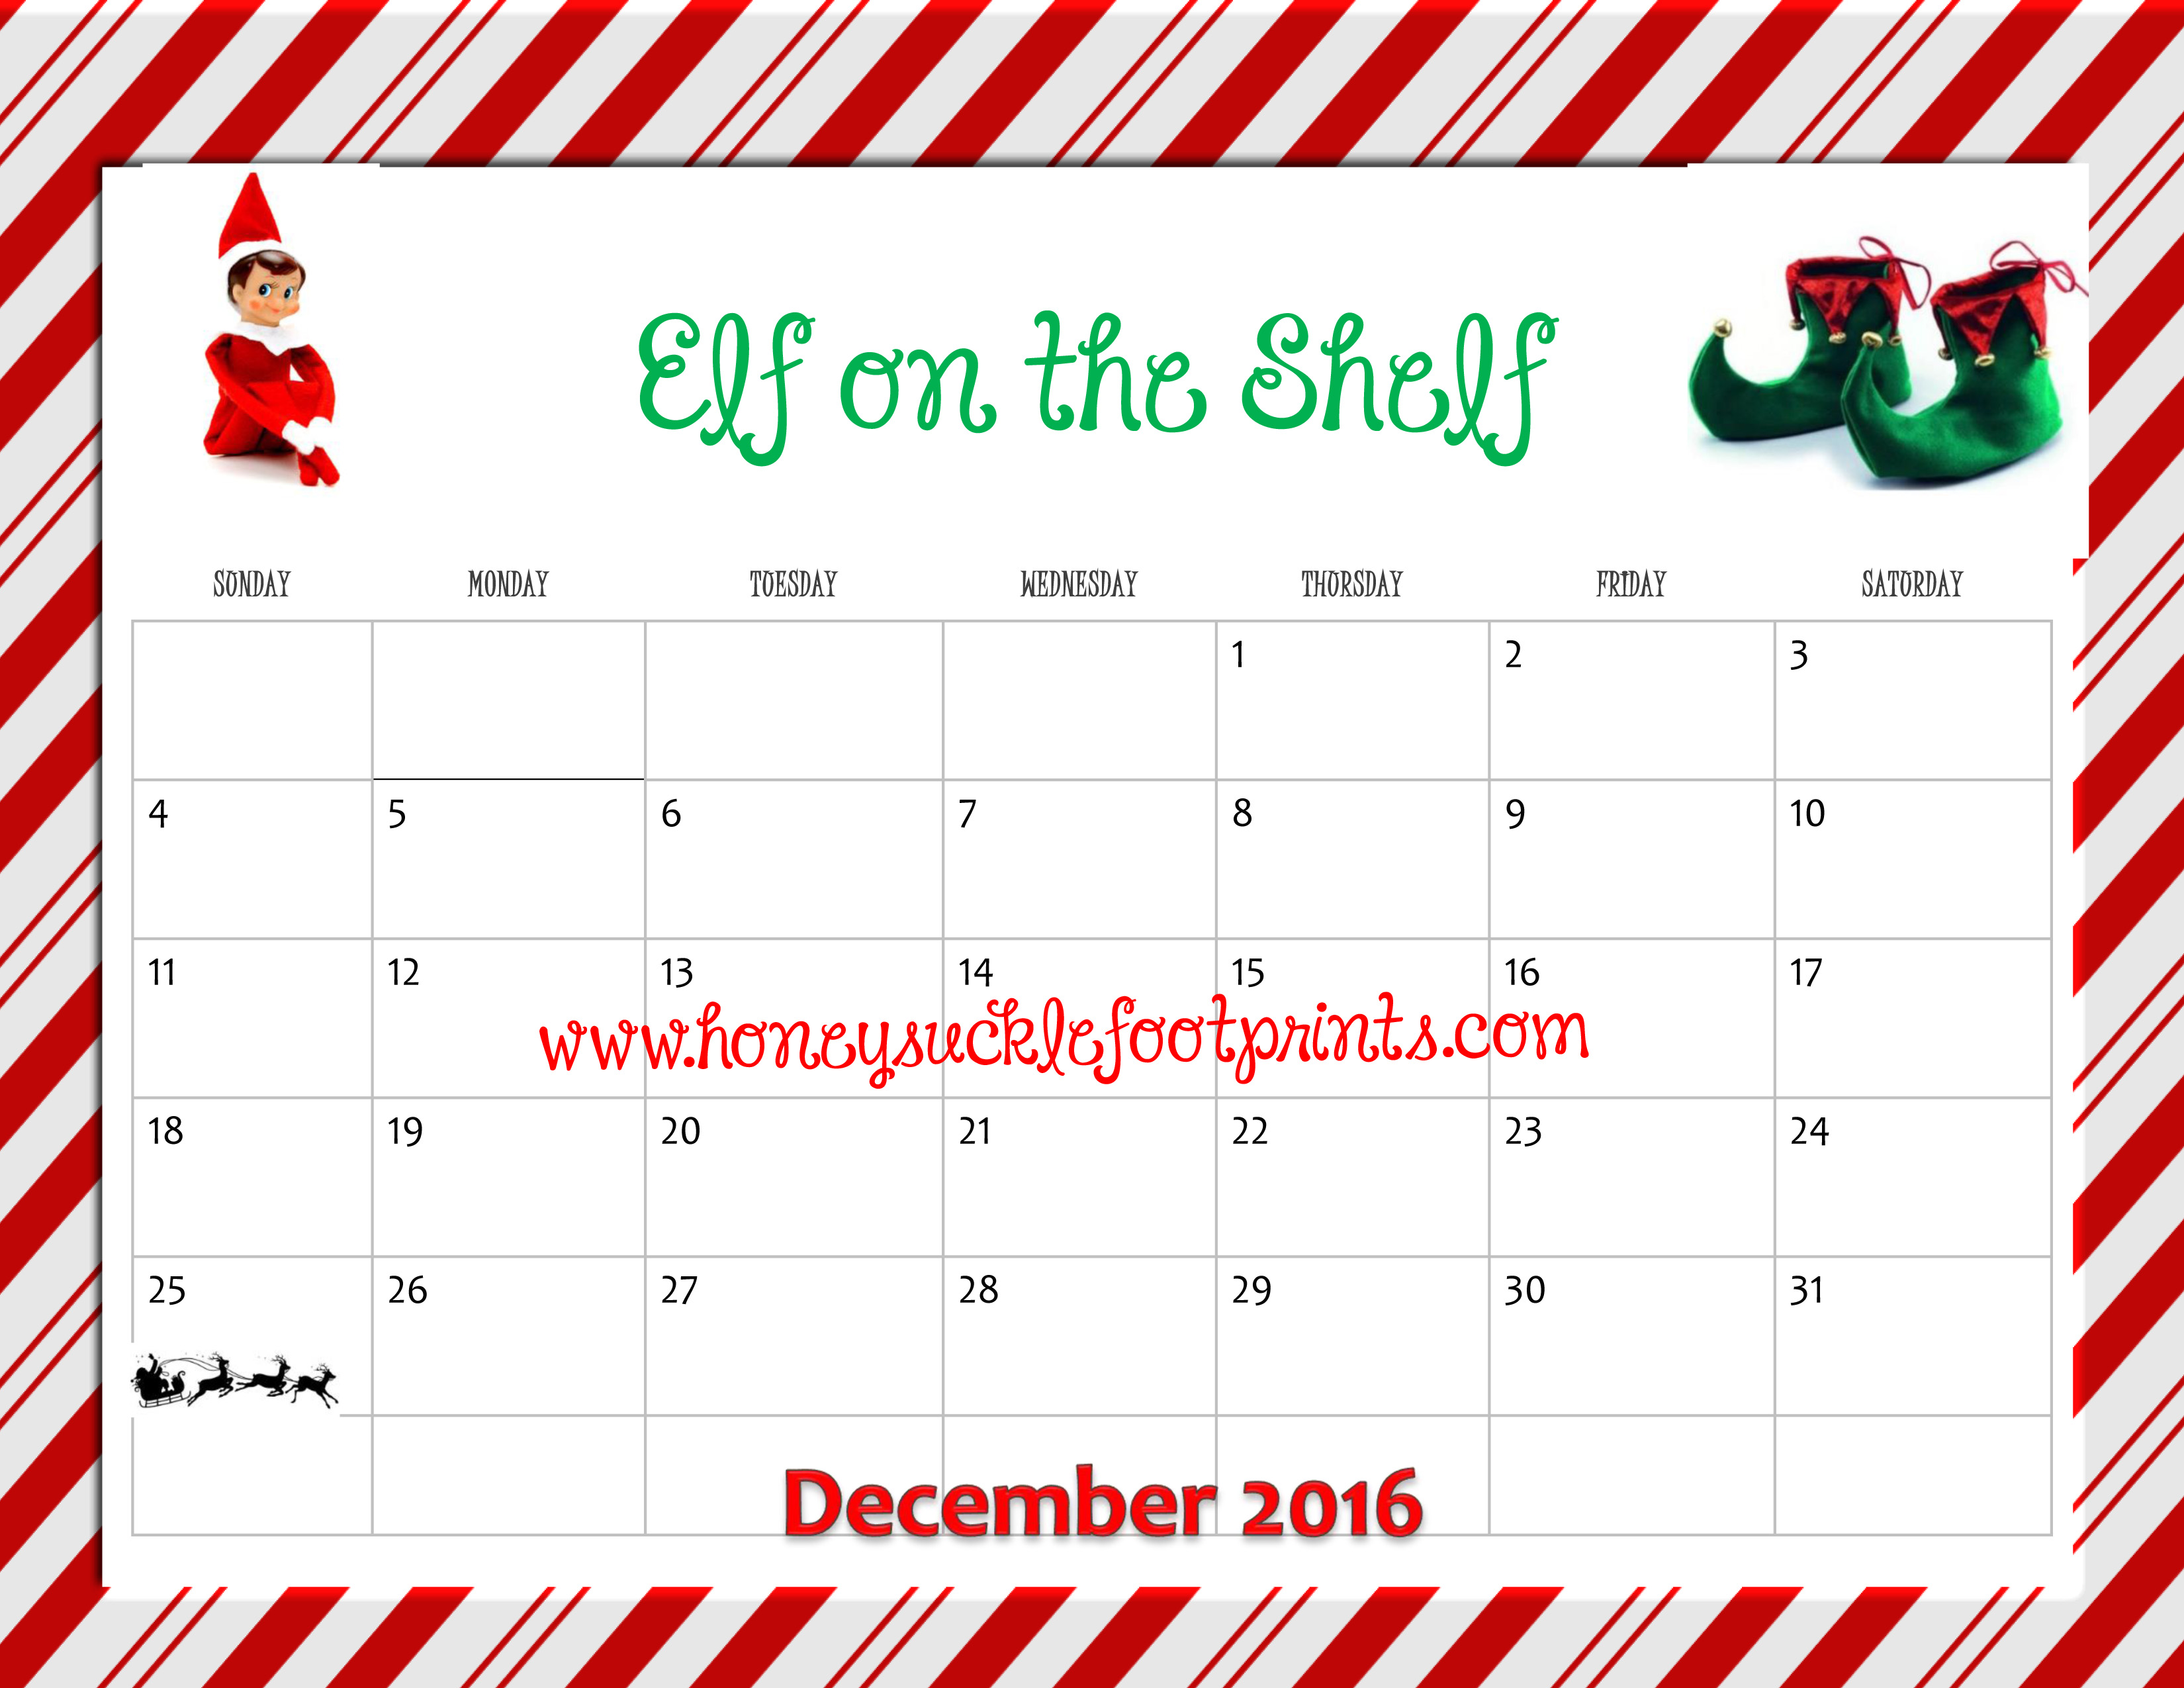 graphic about Free Elf Printable identified as Cost-free Printable Elf upon the Shelf Creating Calendar Notion